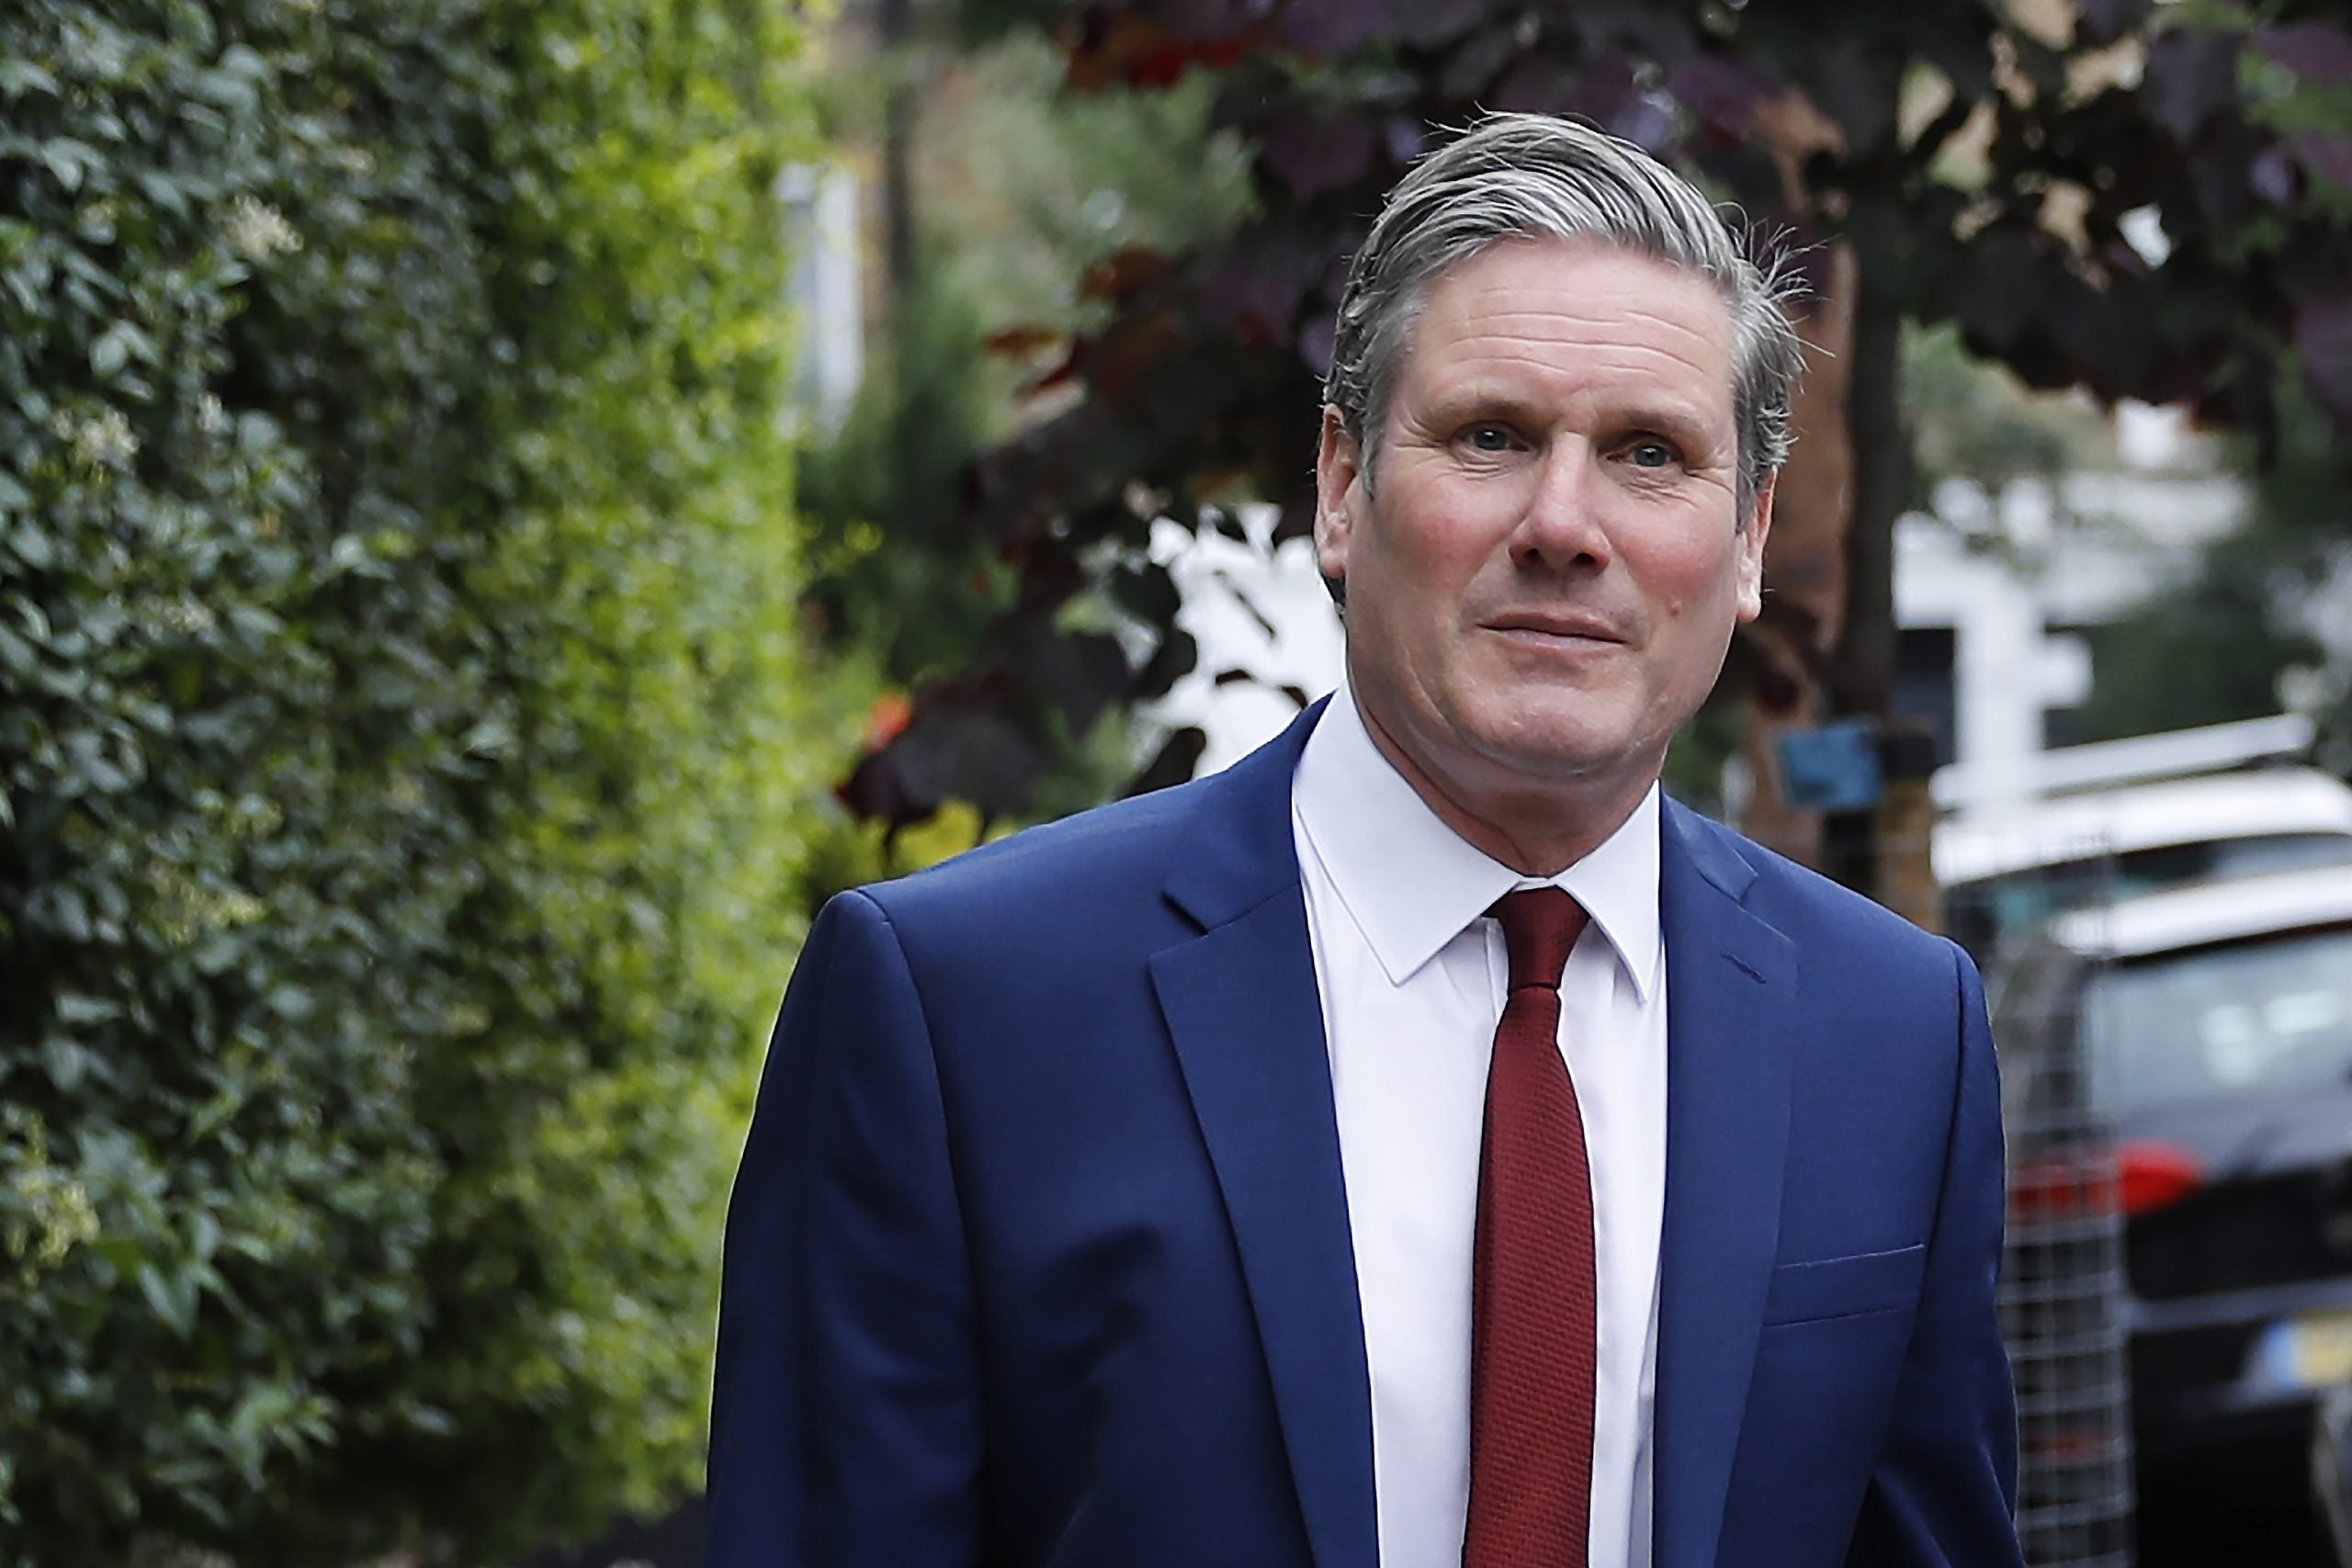 What is Keir Starmer up to over a Brexit extension?